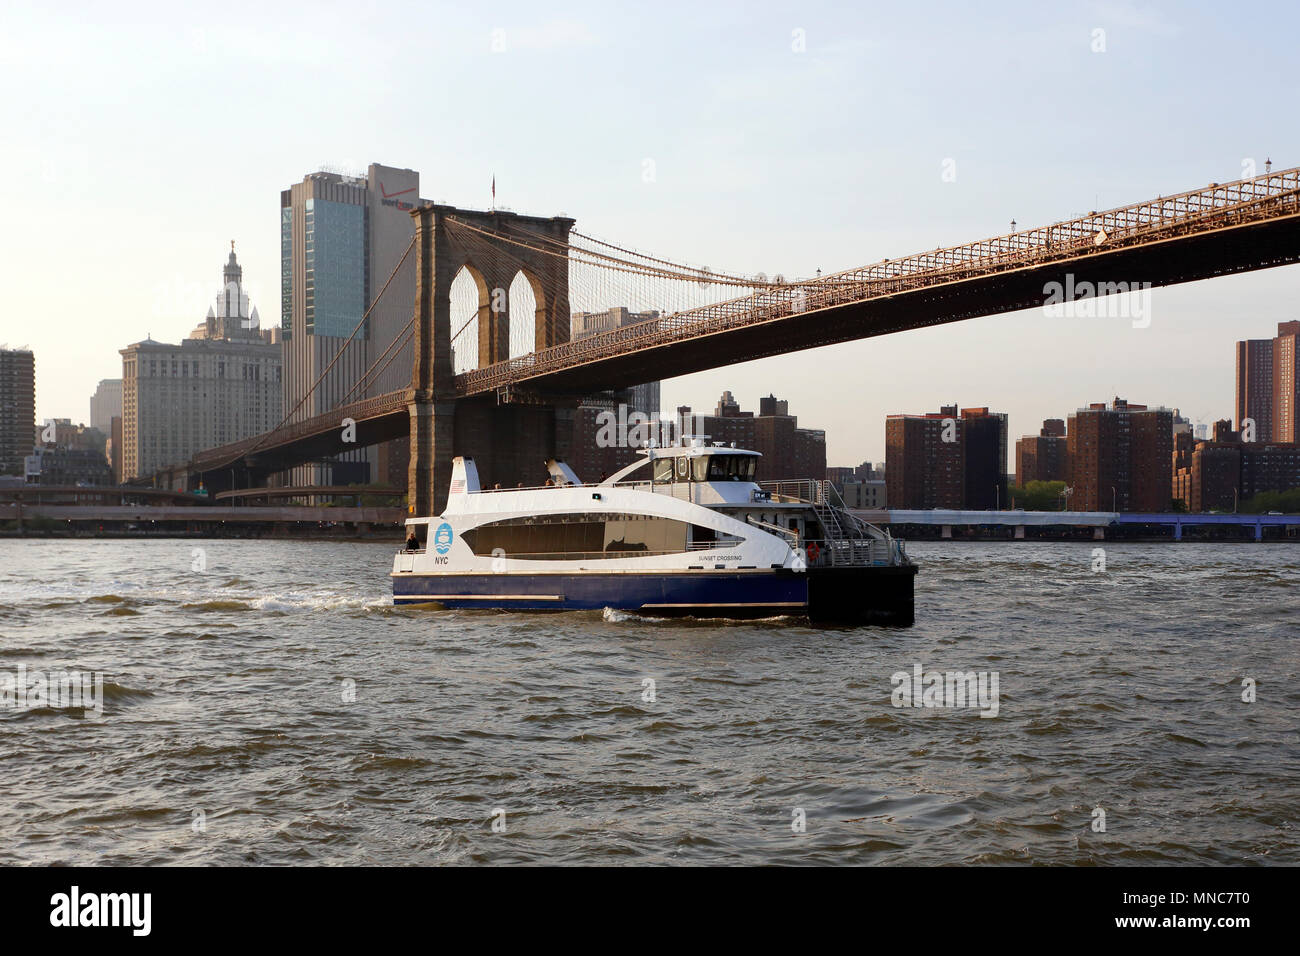 NYC Ferry Boat 'Sunset Crossing' crossing the East River at sunset - Stock Image